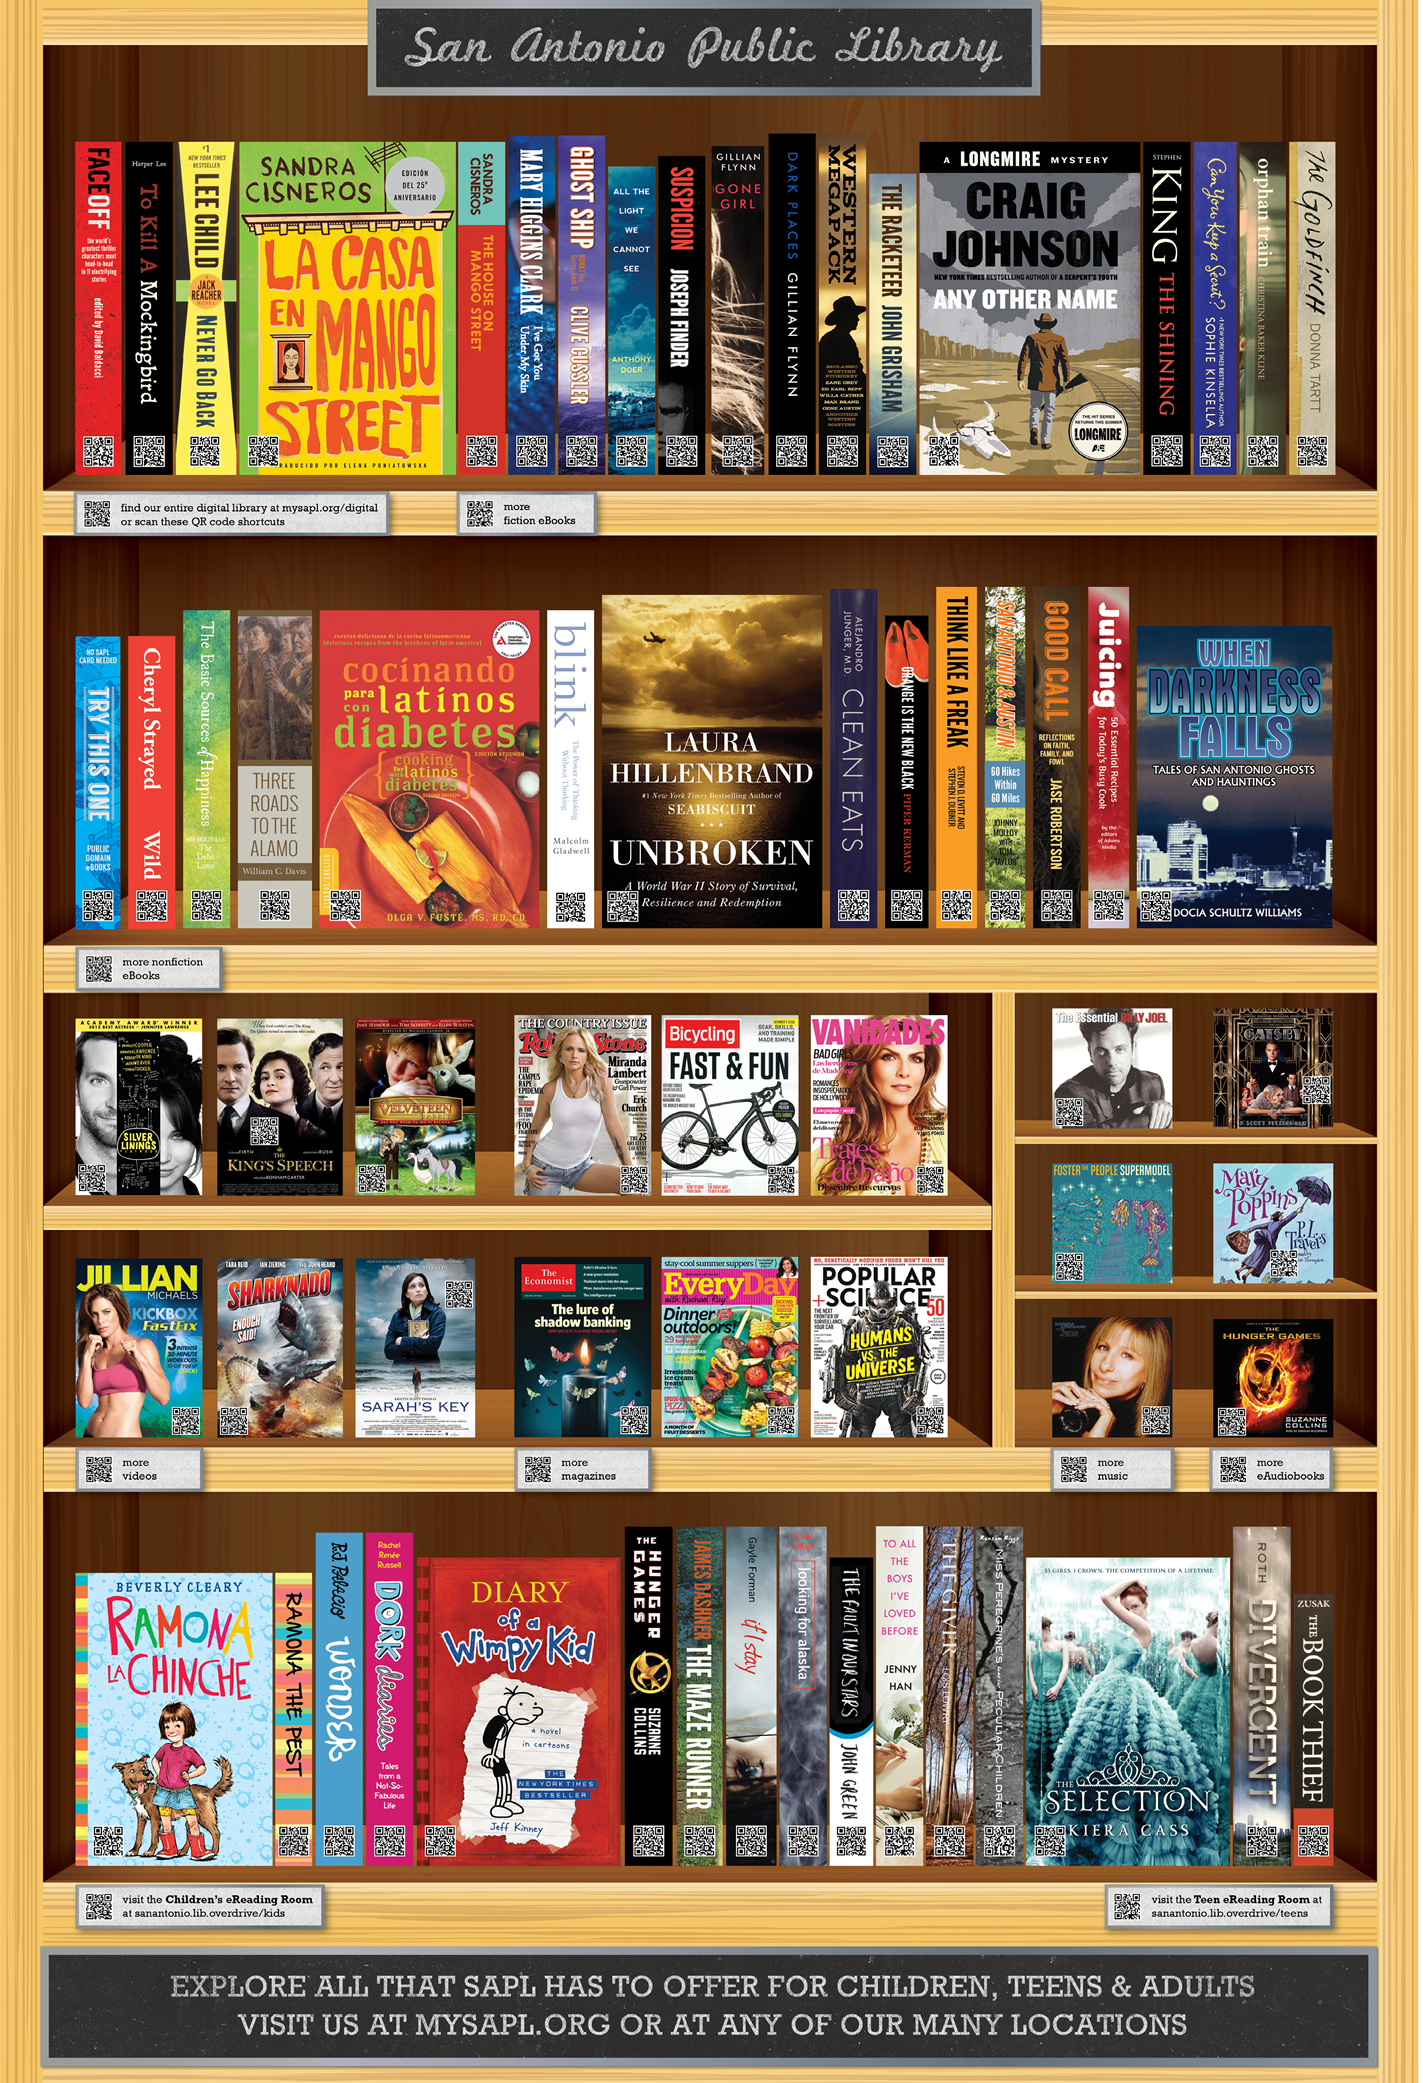 shelfonly Cool!!! The San Antonio Public Library Begins Using Digital Wallpaper For eBook Lending and Promotion